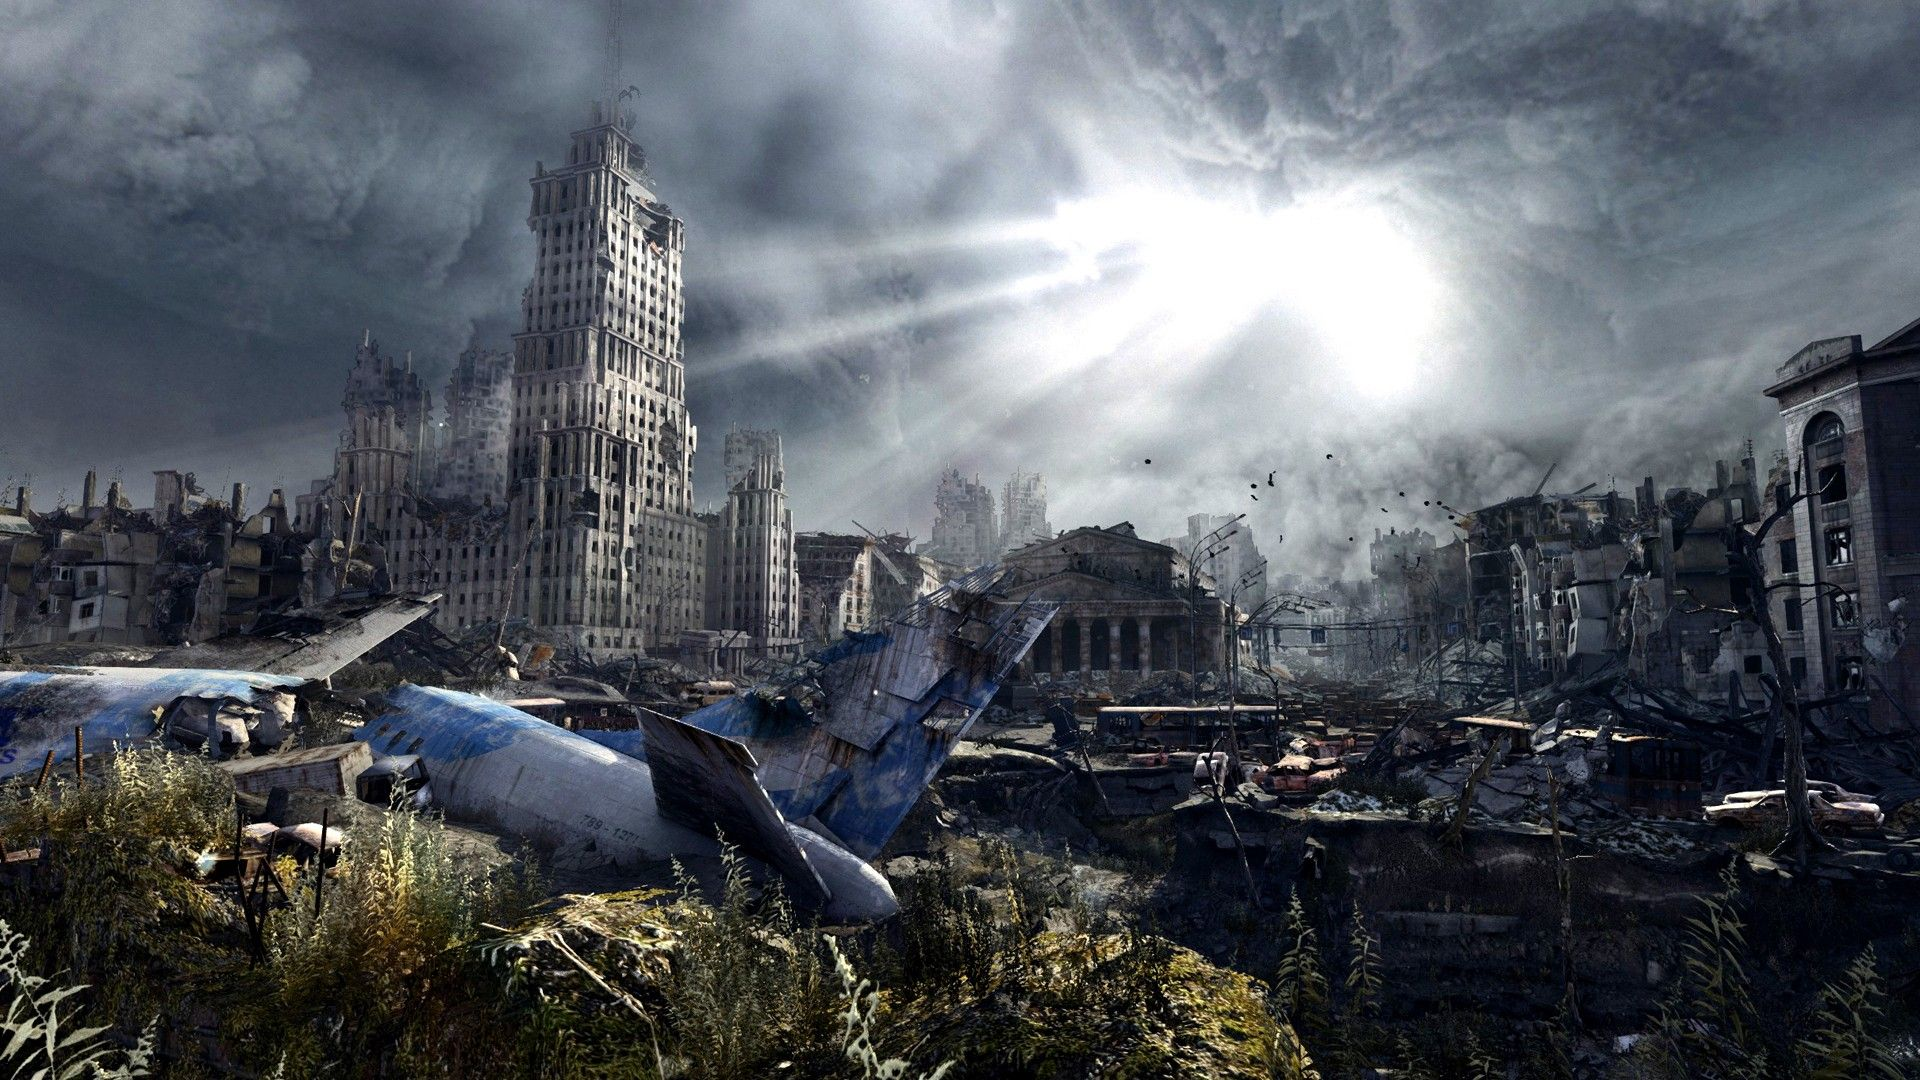 an analysis of the apocalyptic scenario in earth after a nuclear strike on mars Apocalypse, now nuclear war may result in loss of if the scenario described above takes place, the earth will become a dead planet like mars, the scientist.